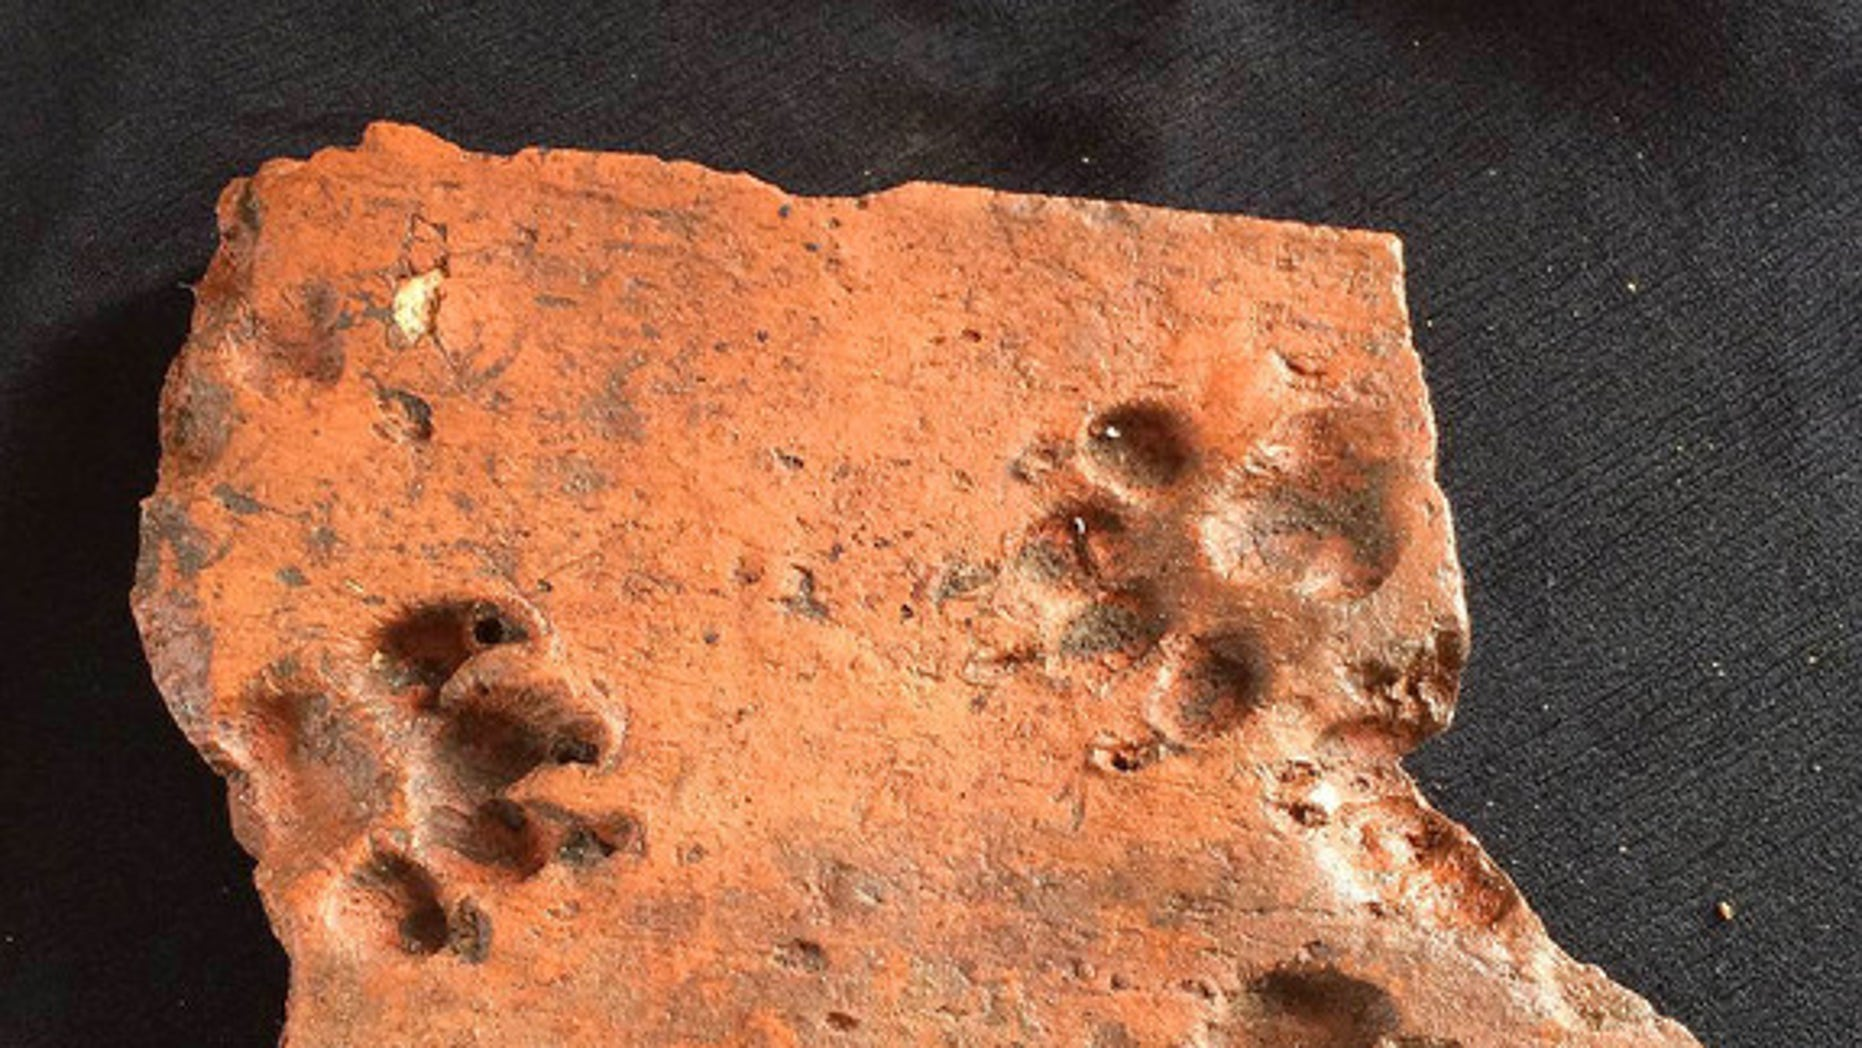 A dog pushed its paws into this ancient Roman tile before it could dry.